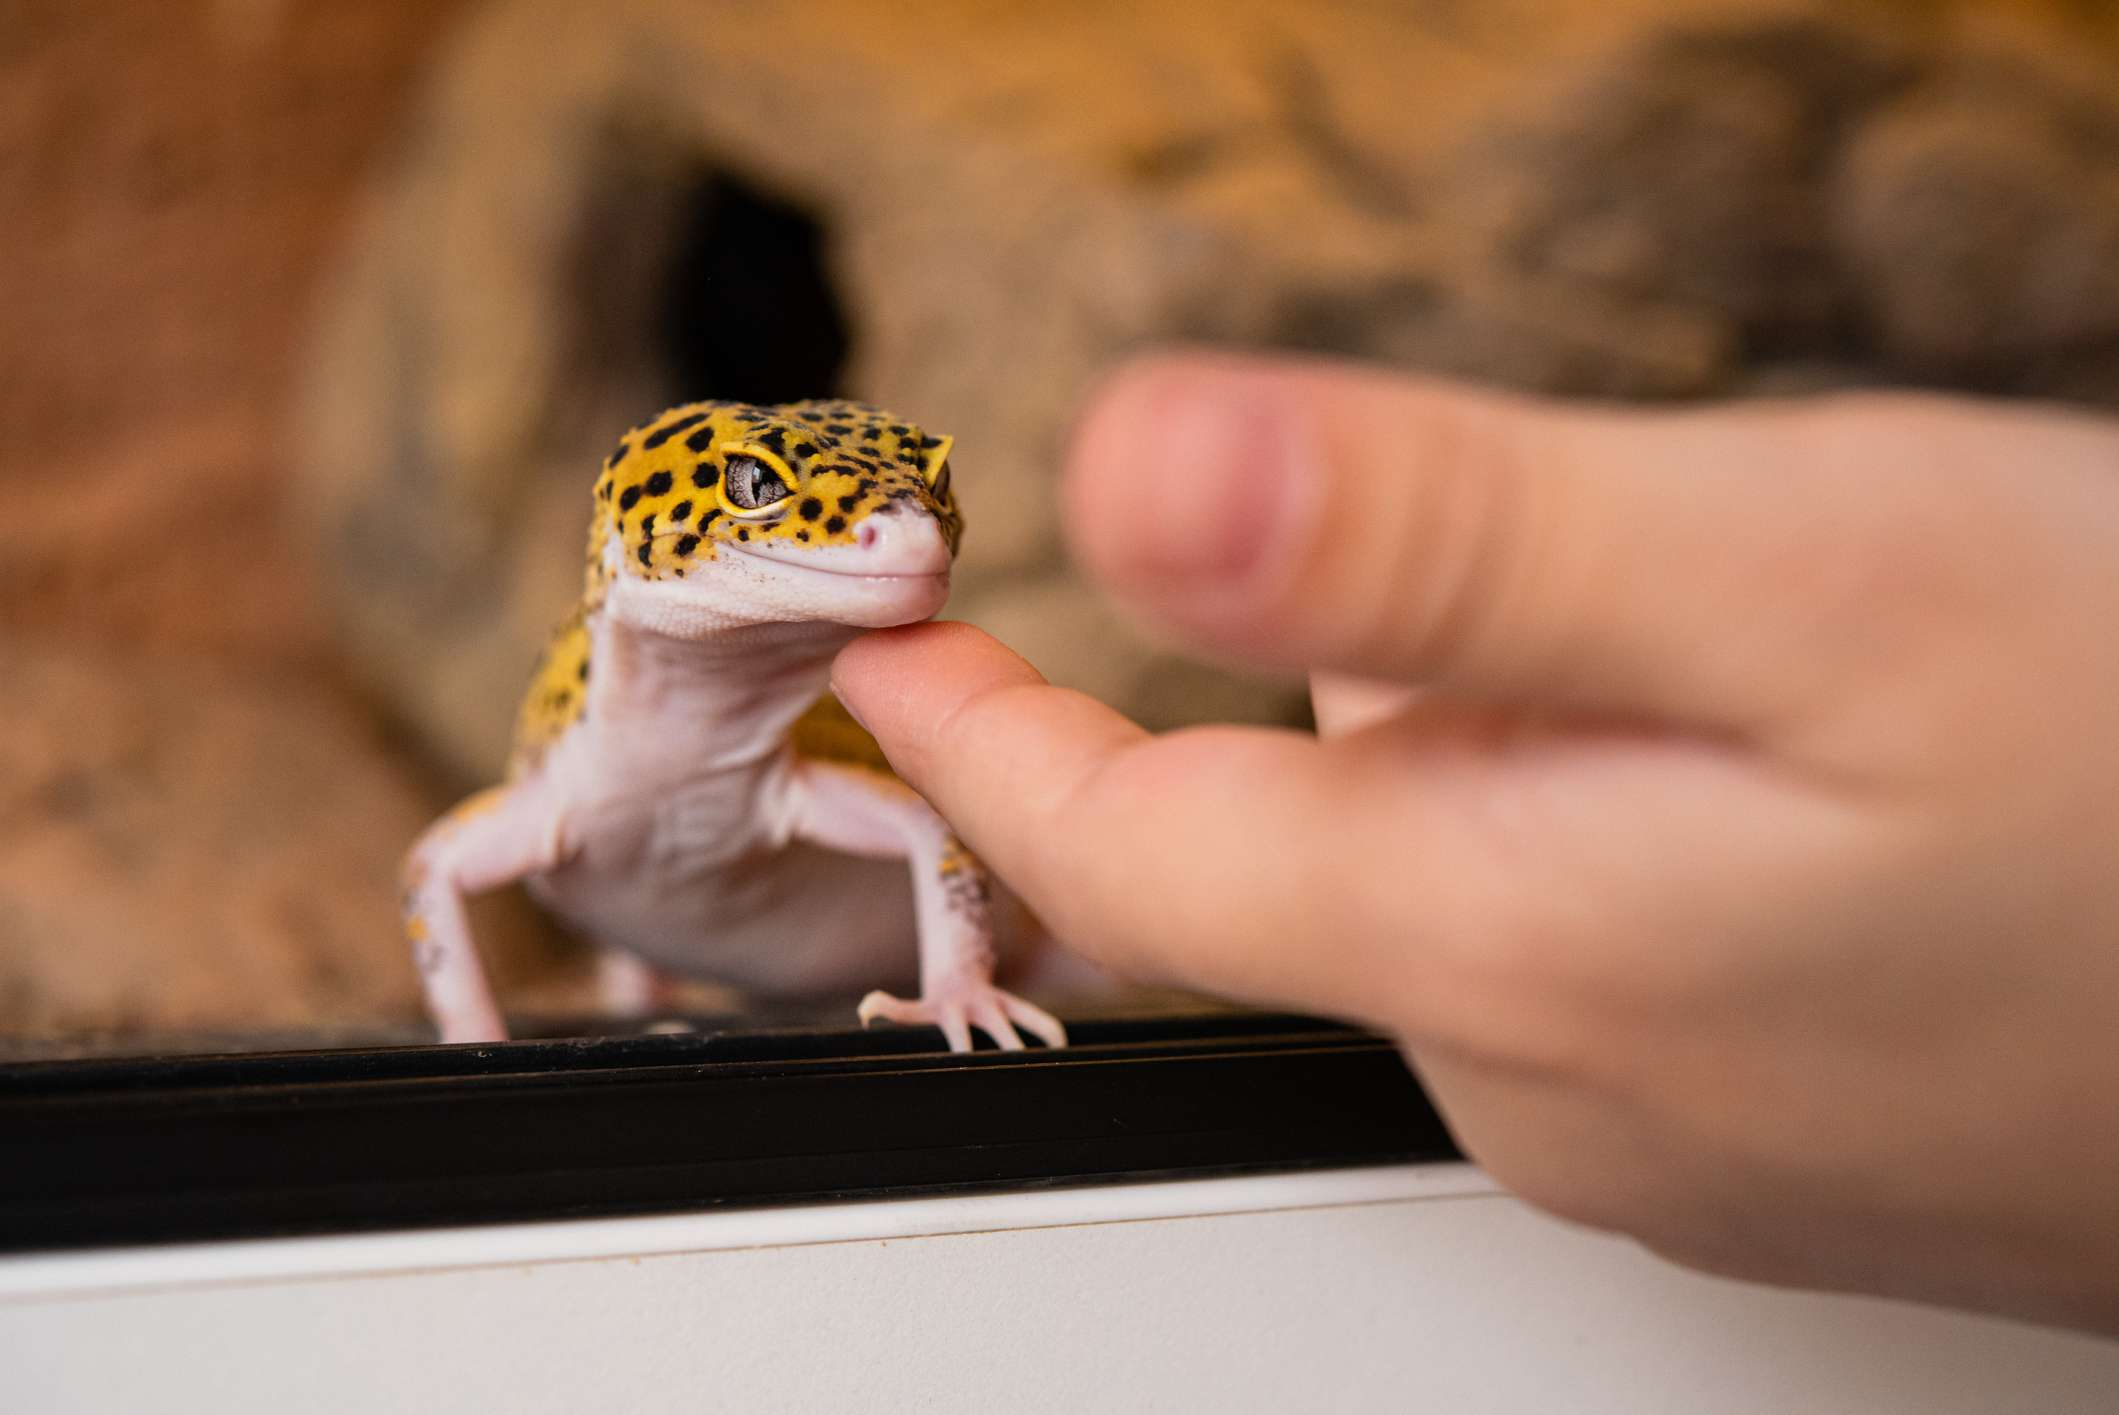 Leopard gecko being rubbed on the chin.